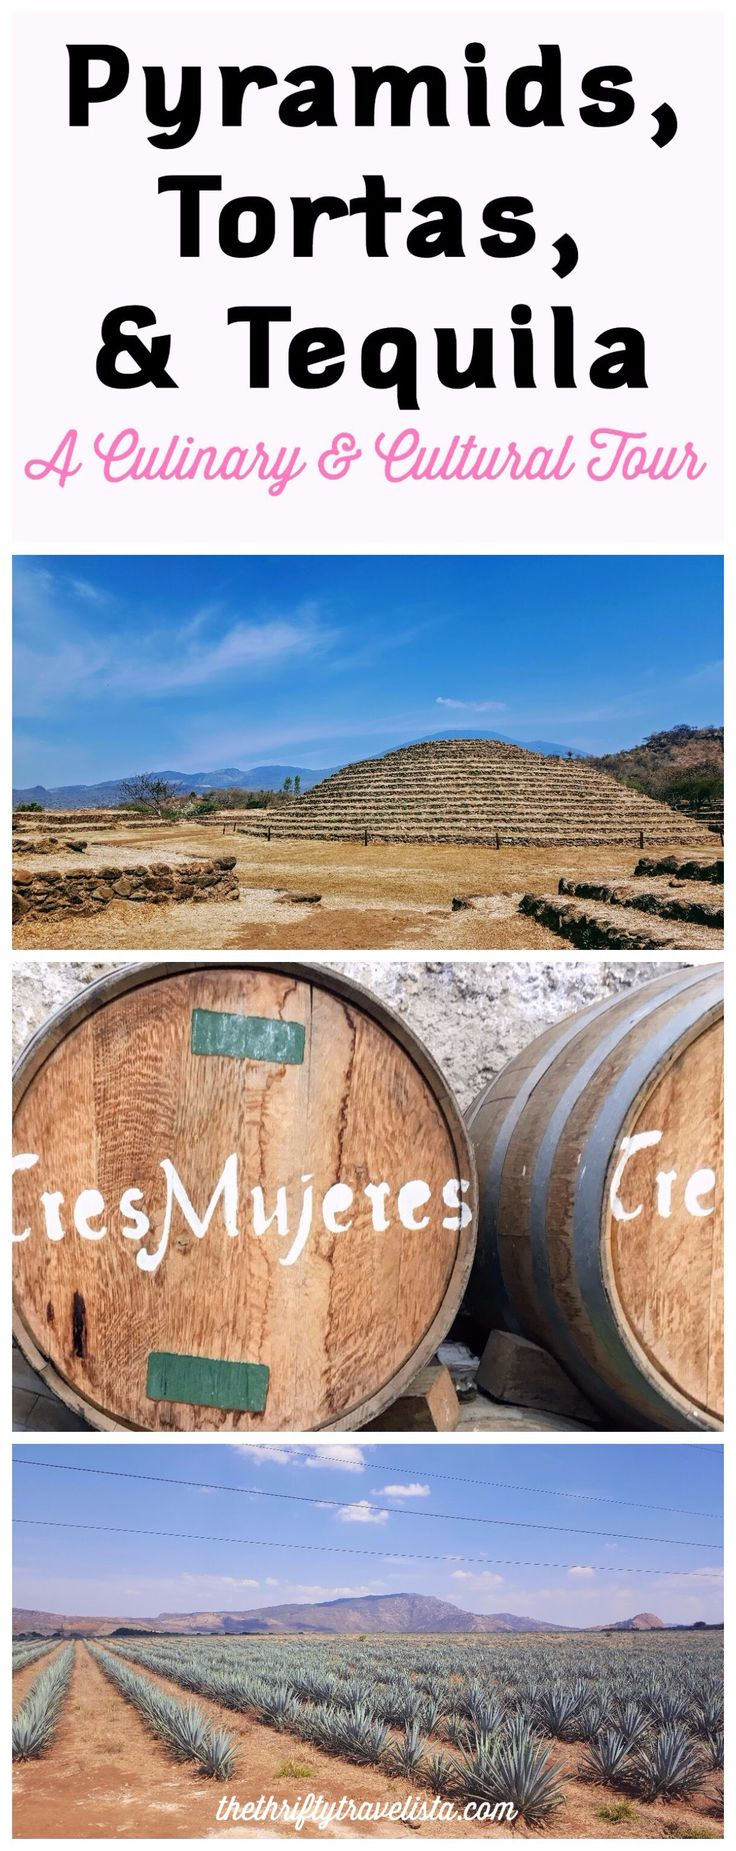 An easy day trip from Guadalajara to the UNESCO World Heritage Site encompassing the town of Tequila and the archaeological site of Guachimontones in Jalisco, Mexico.